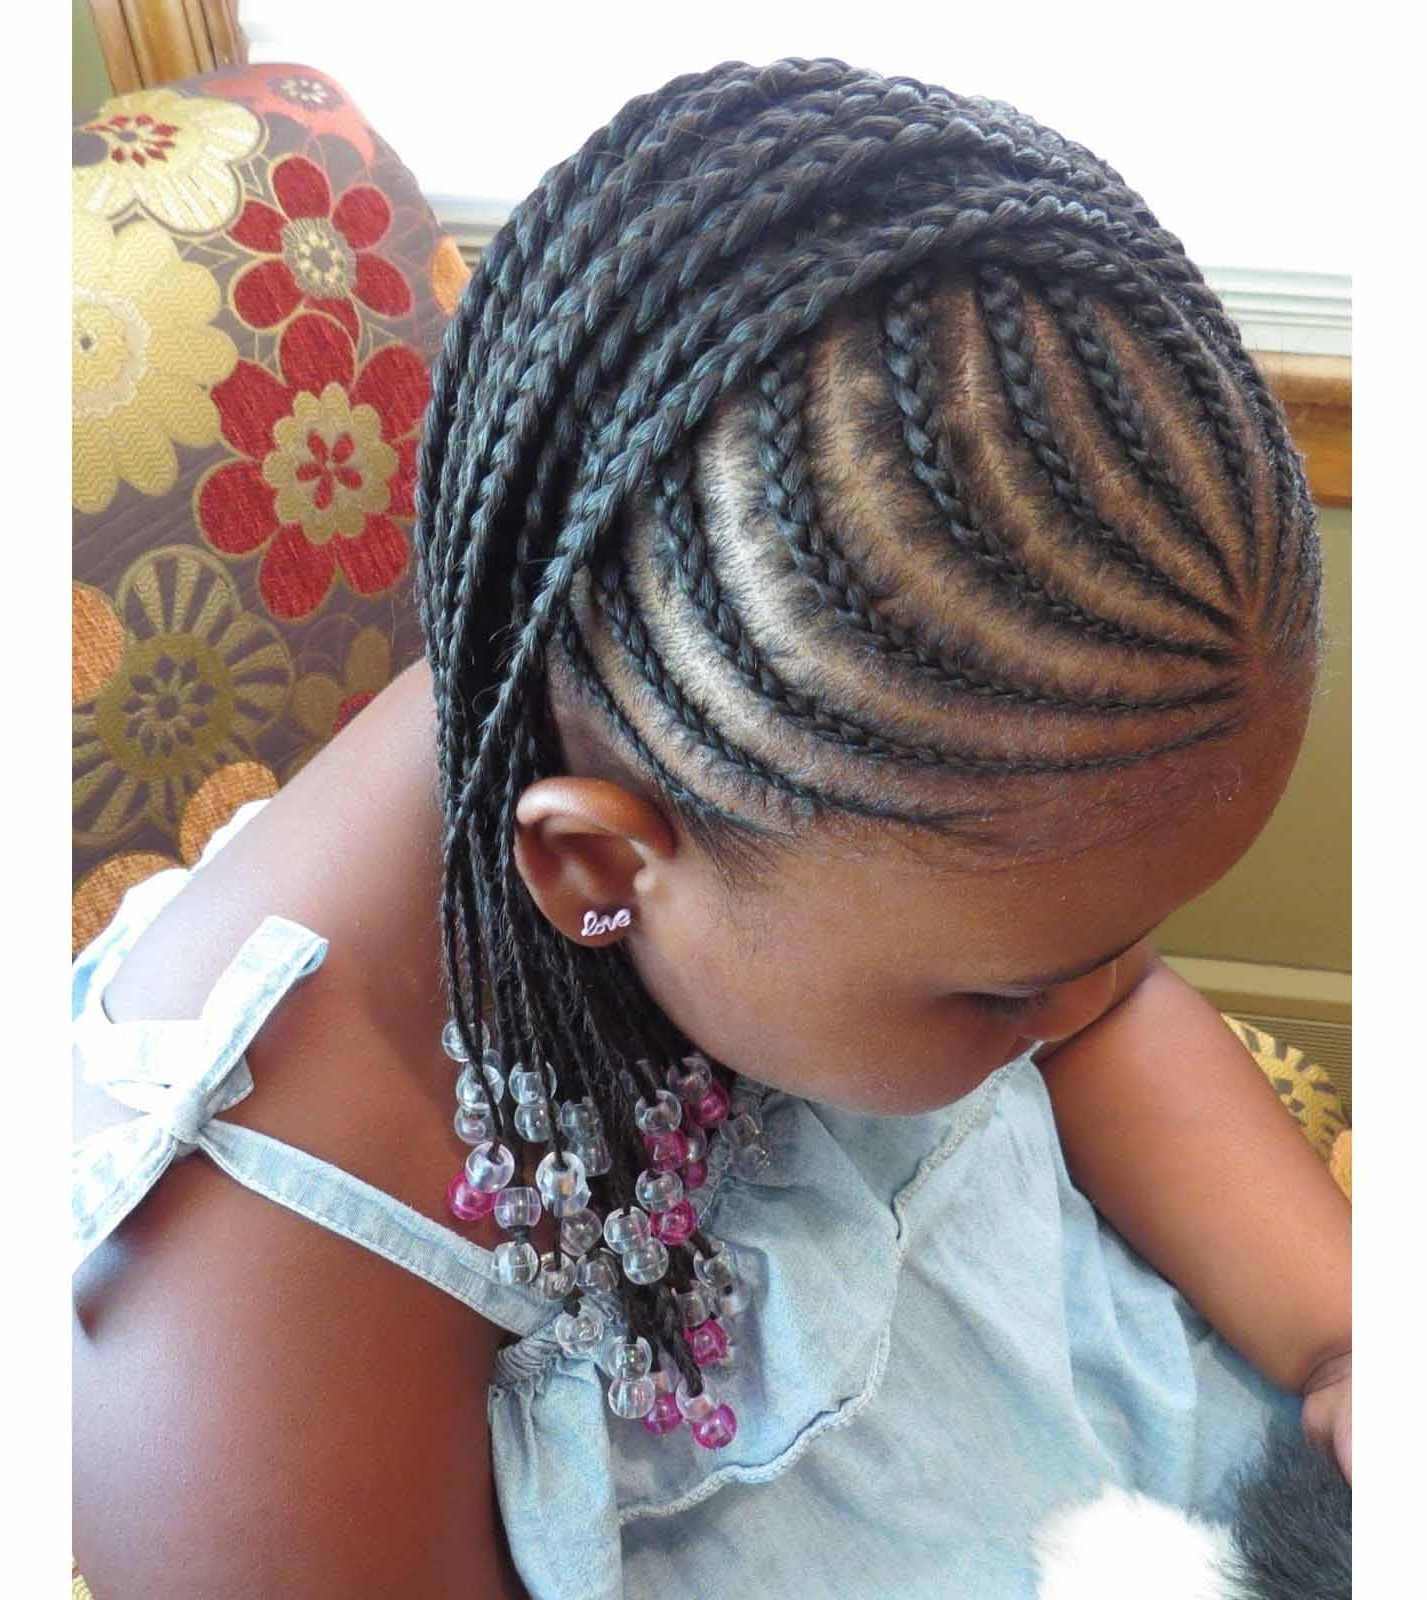 64 Cool Braided Hairstyles For Little Black Girls – Page 2 – Hairstyles Throughout Newest Braided Hairstyles For Little Girls (View 2 of 15)